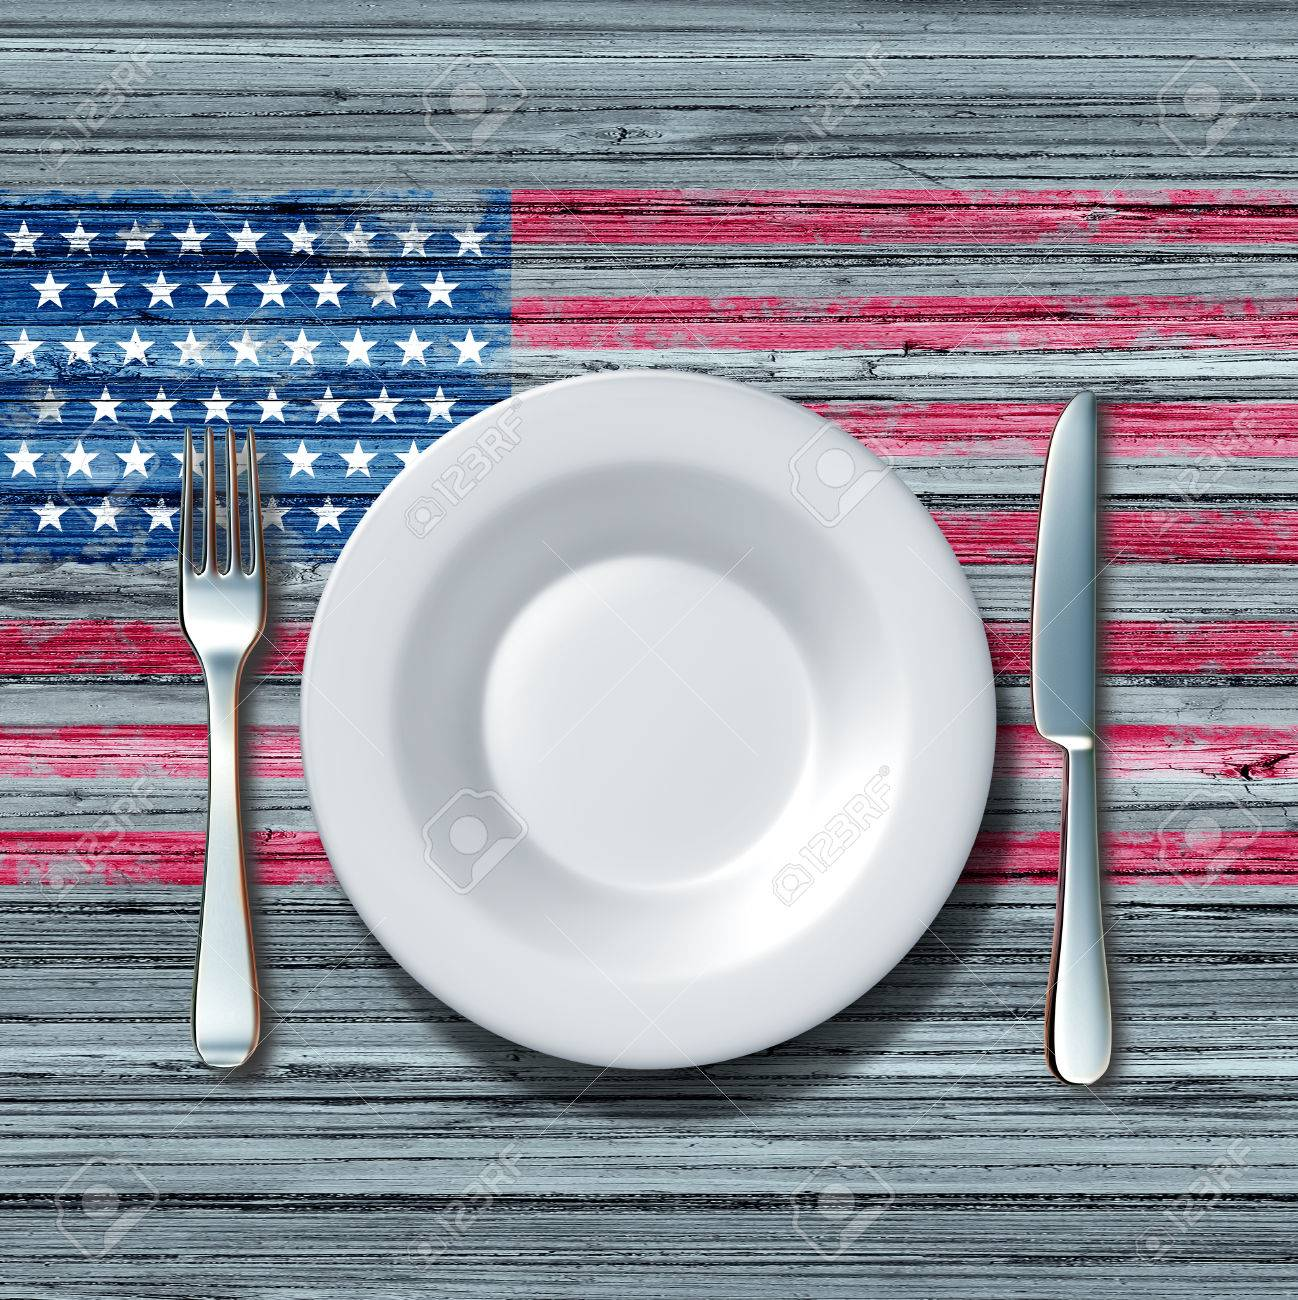 American Cuisine Food Concept As A Place Setting With Knife And ...